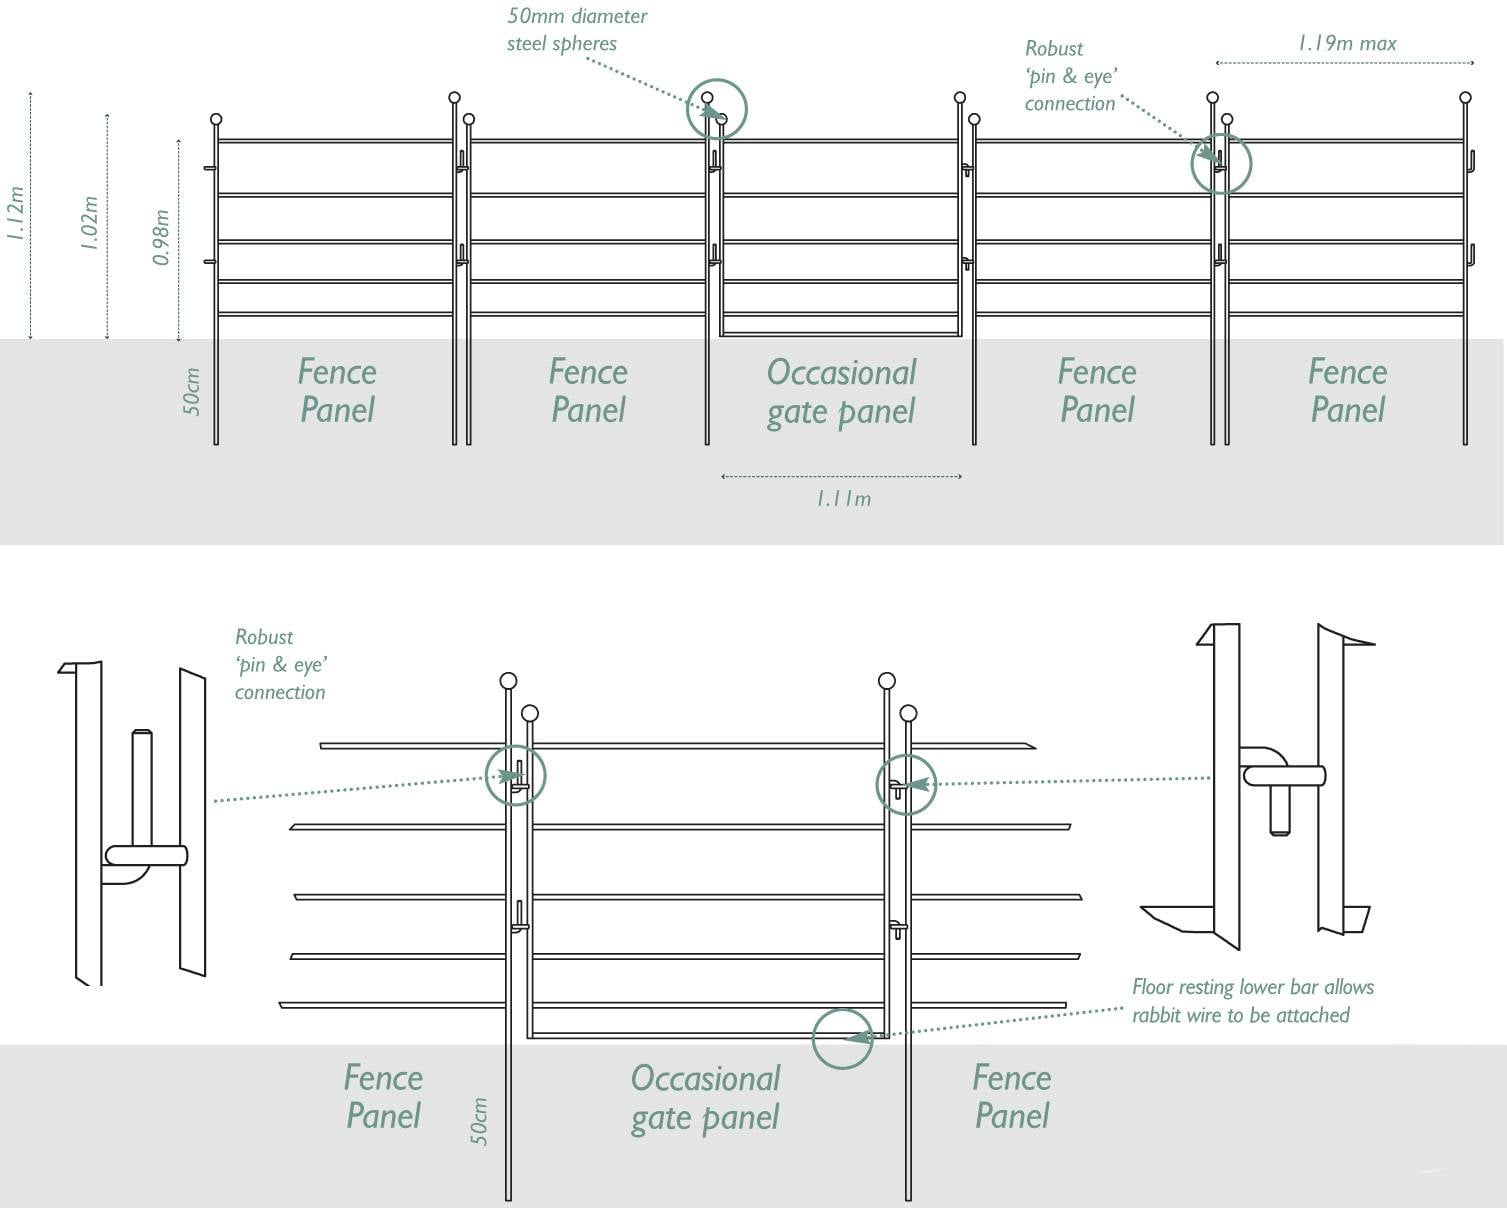 Blacksmiths Fence Diagram